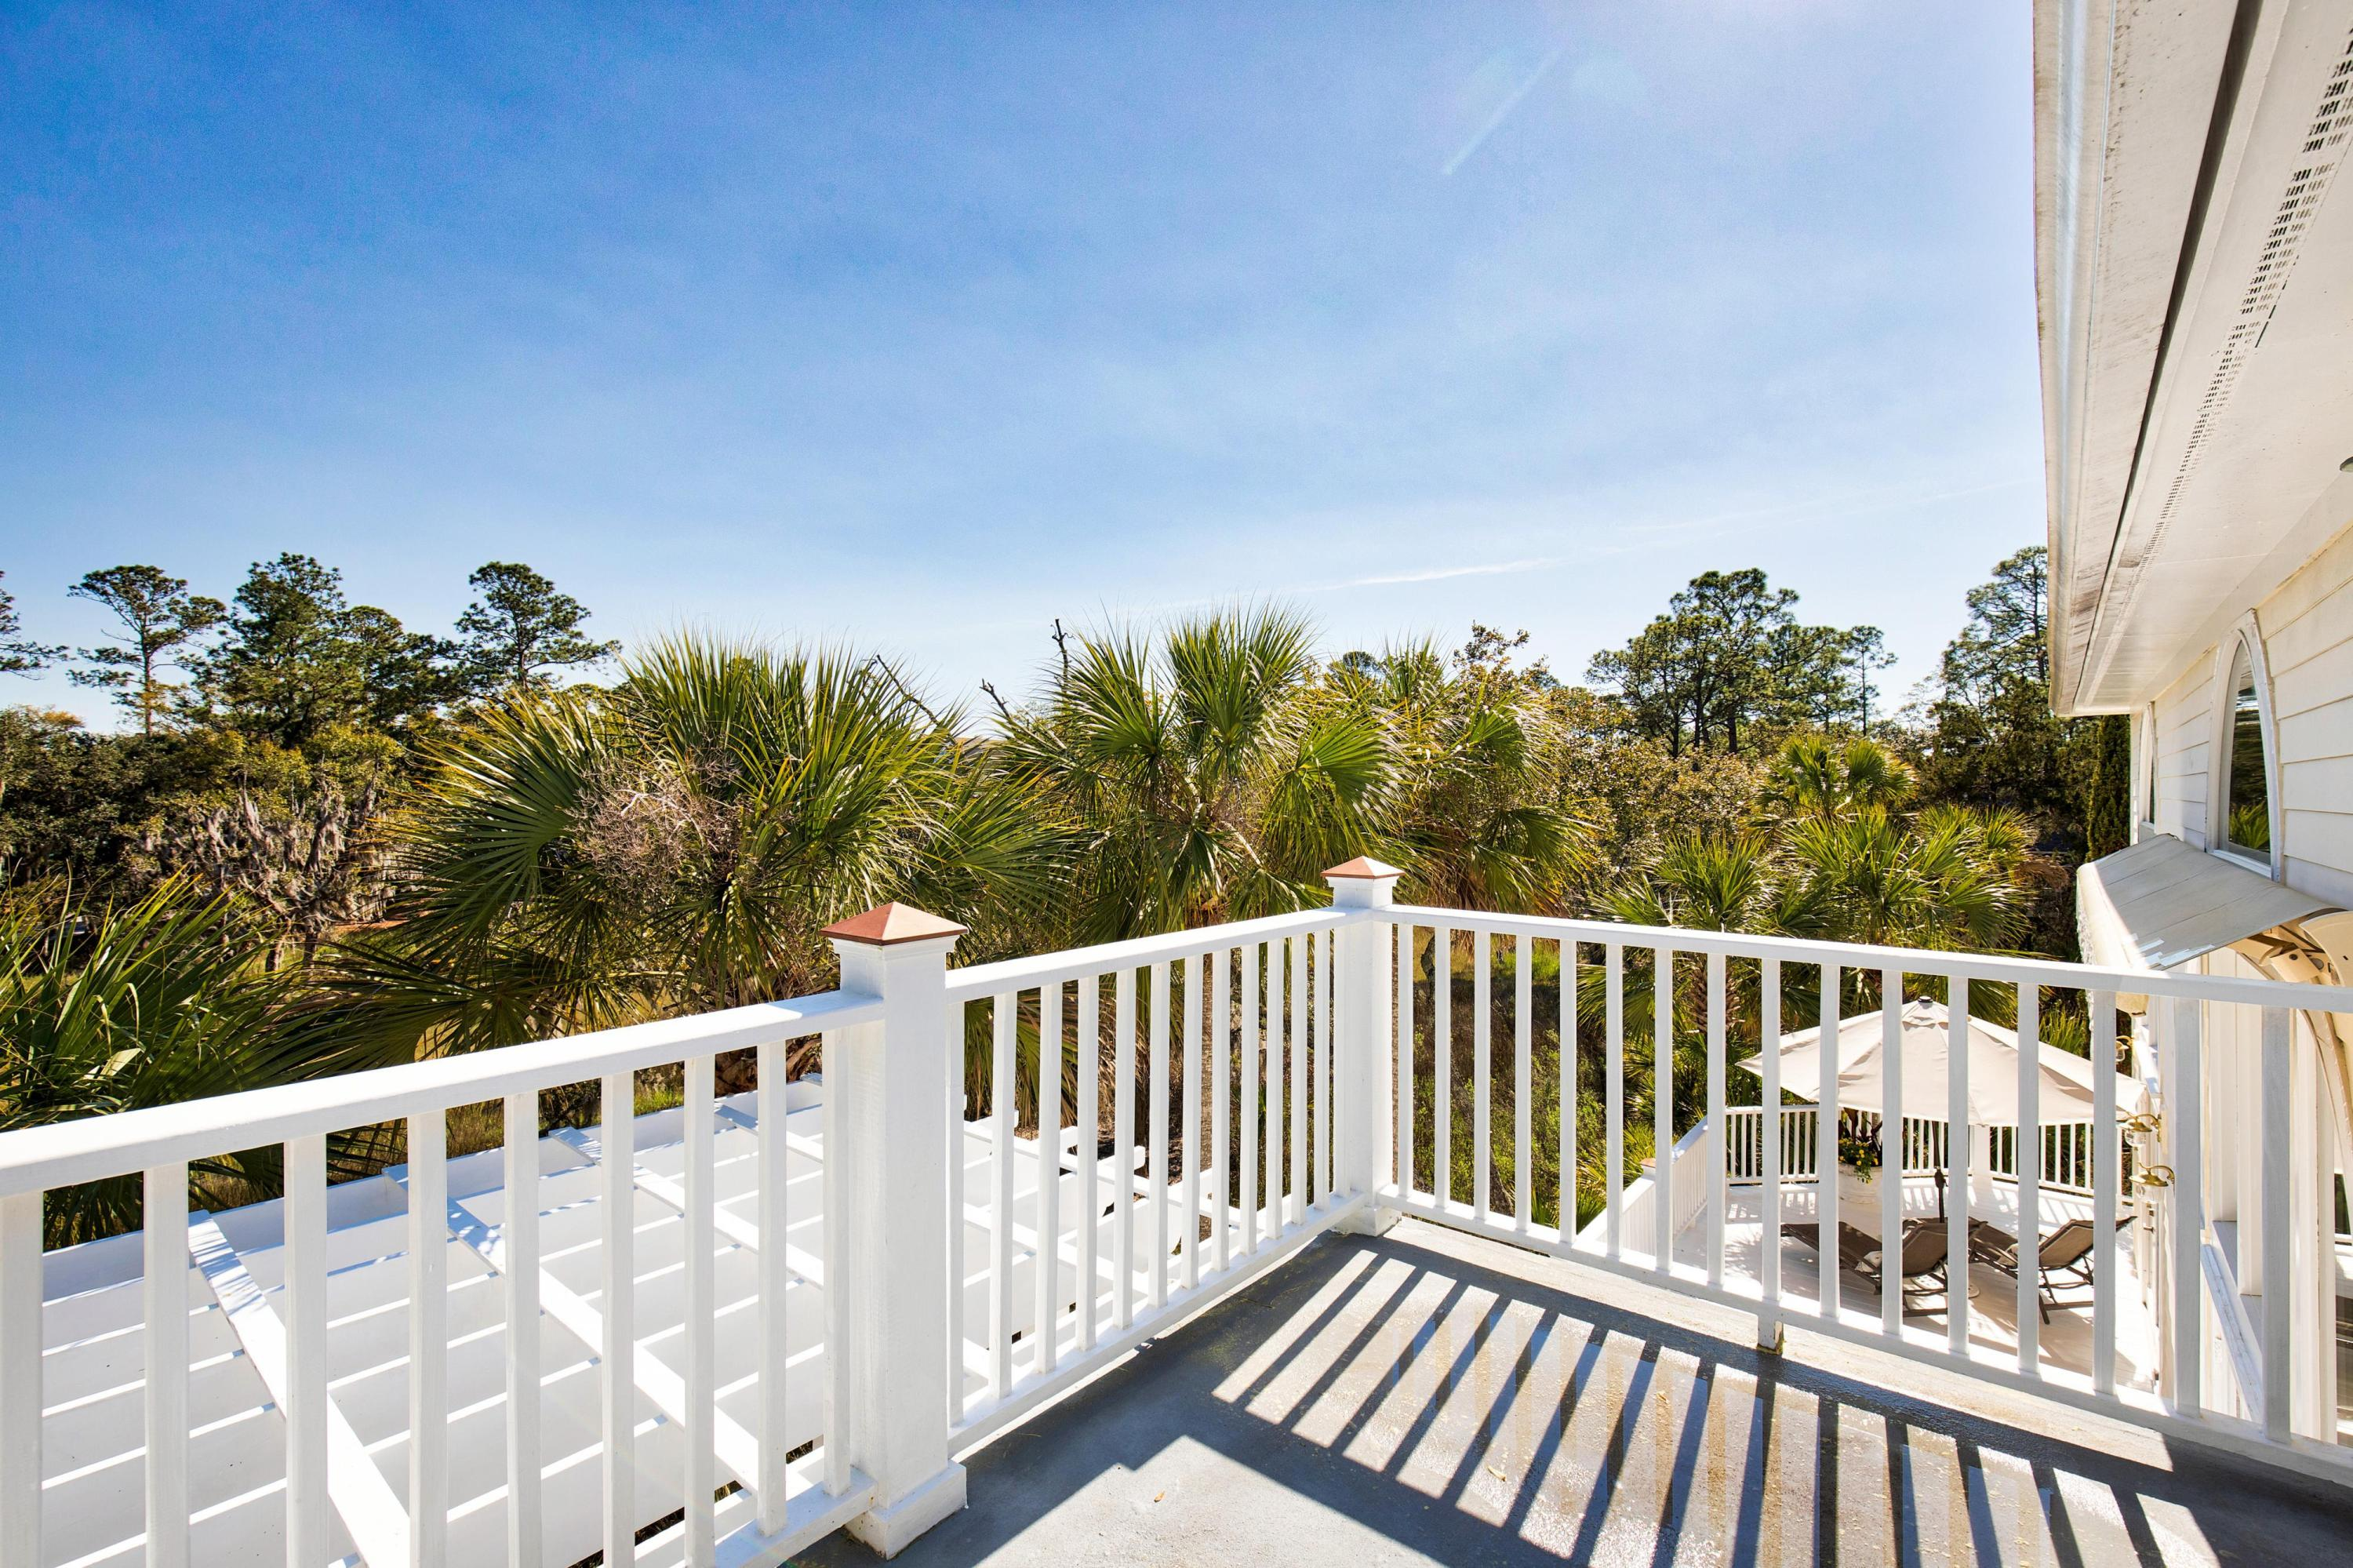 Seabrook Island Homes For Sale - 2957 Deer Point, Seabrook Island, SC - 9